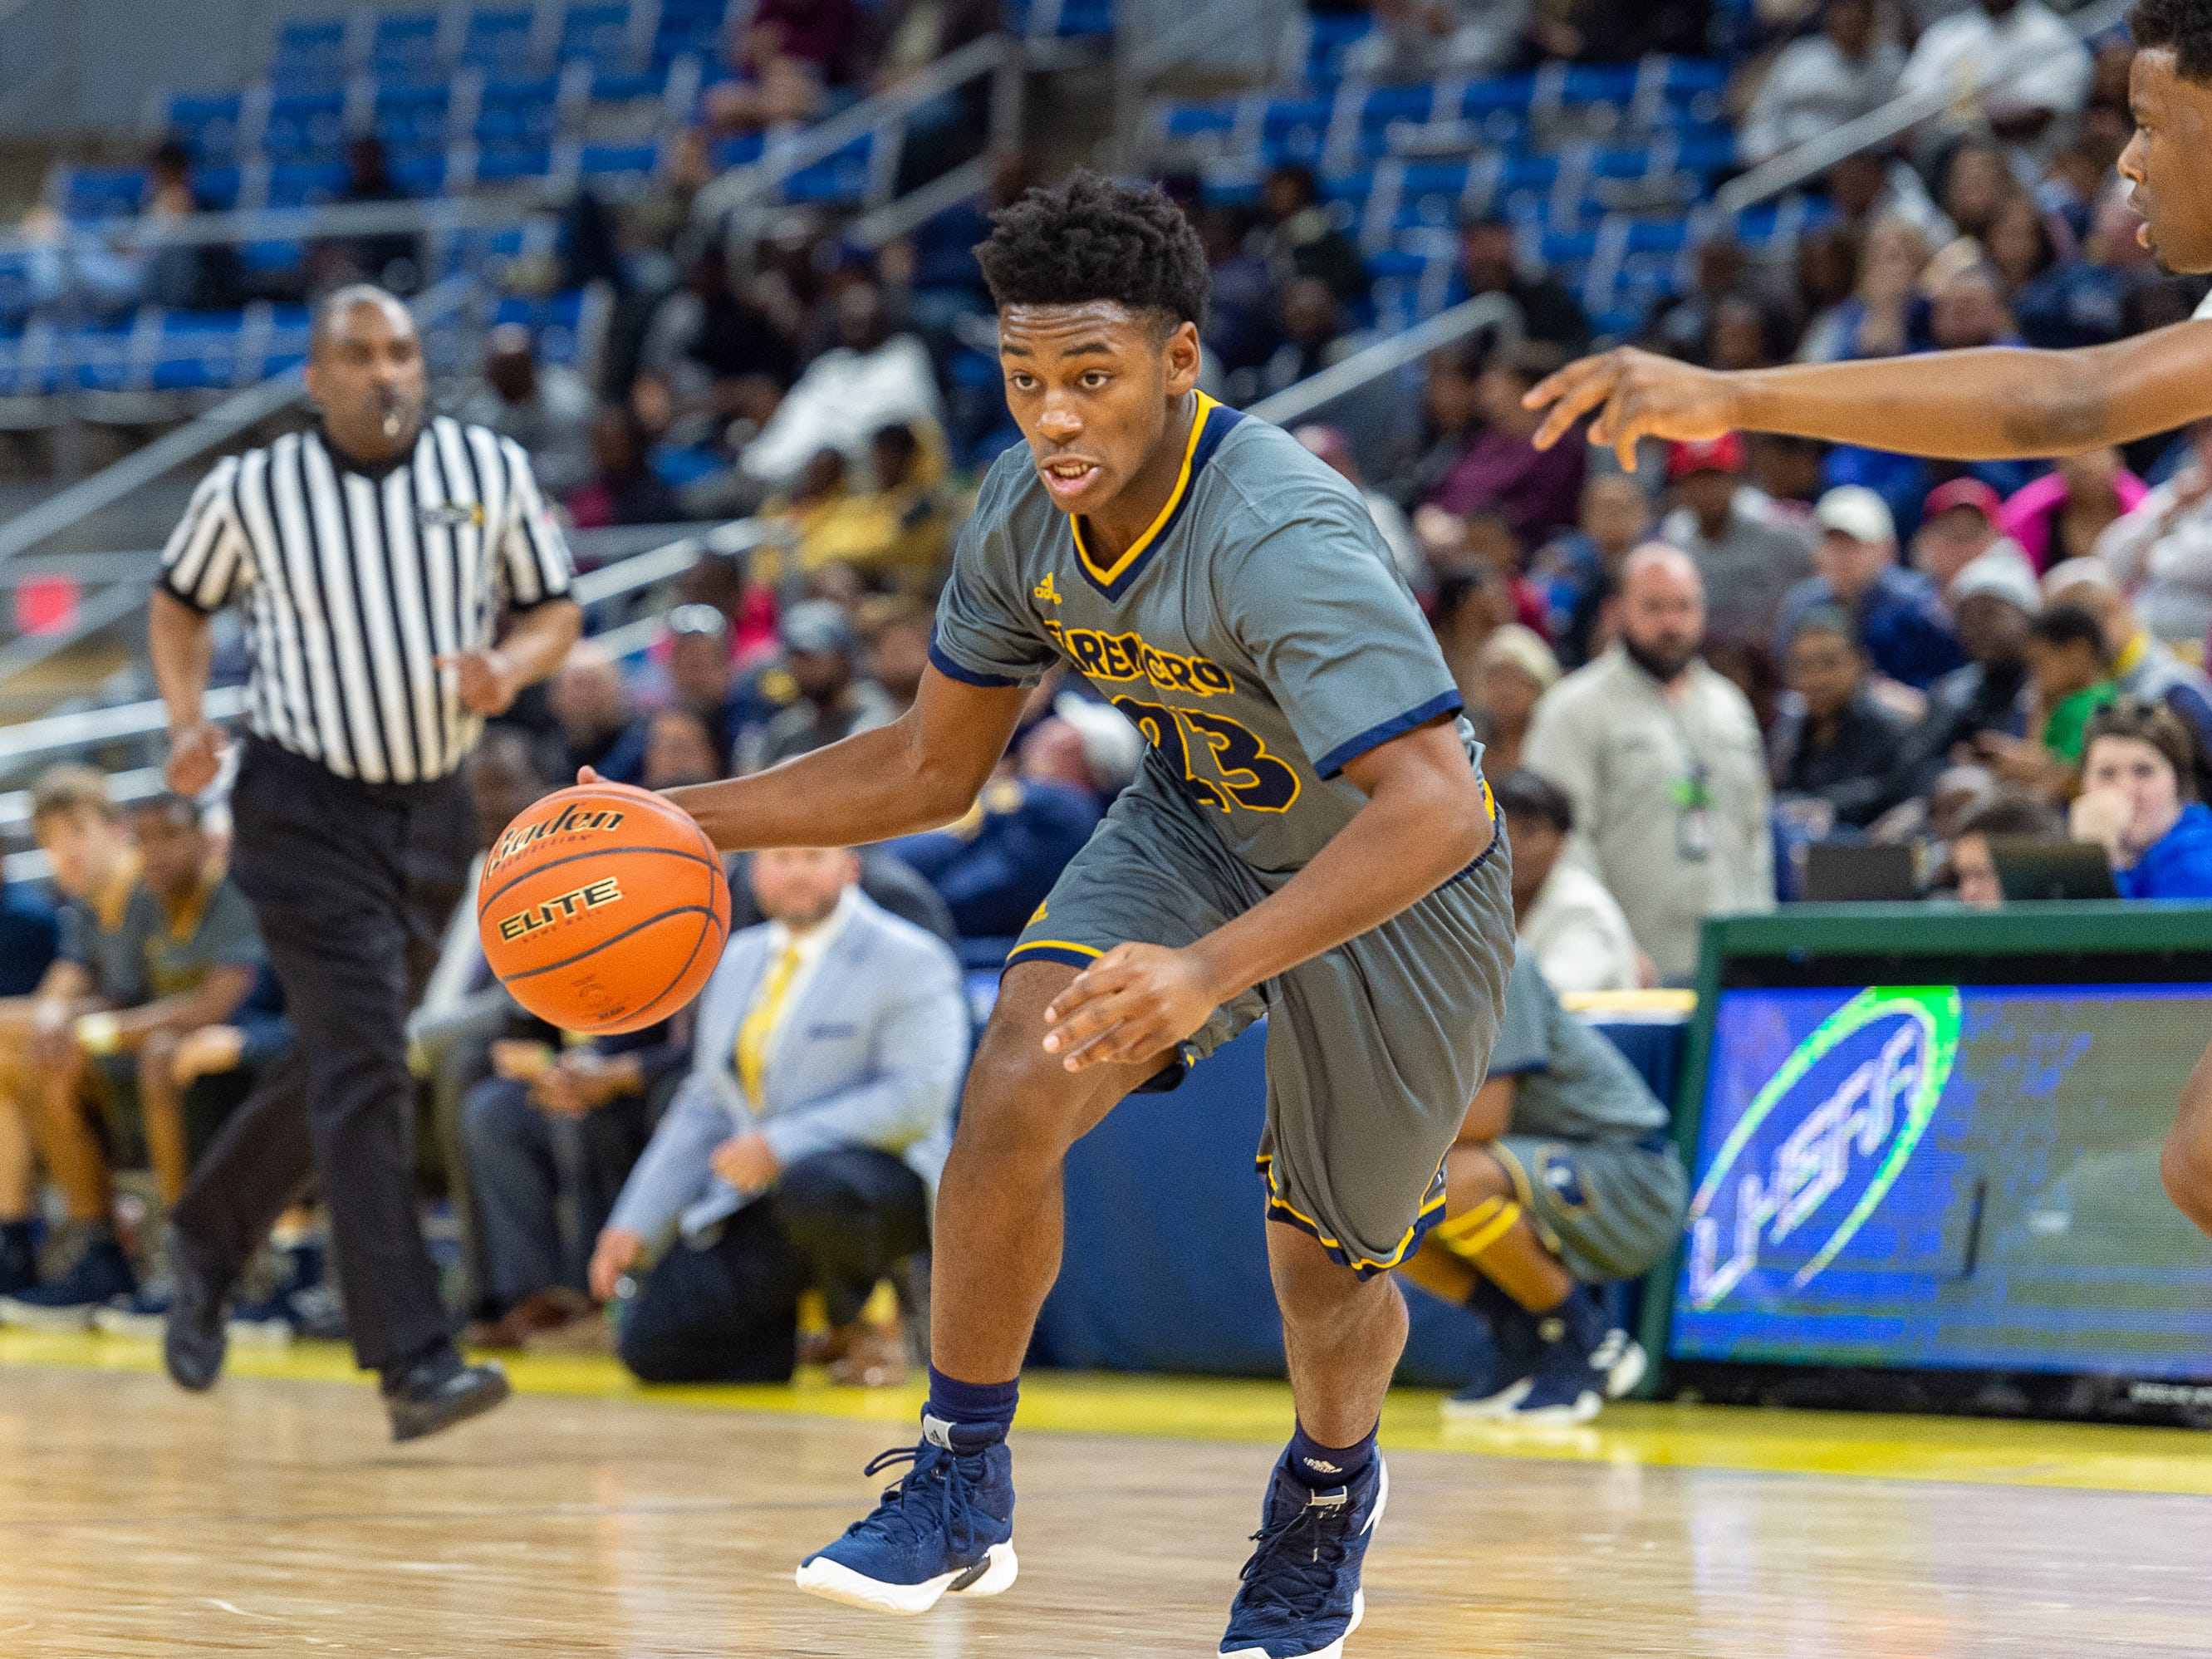 Lucas Williams drives to the basket as Carencro falls to Bossier in the Semi Final round of the LHSAA State Championships. Tuesday, March 5, 2019.